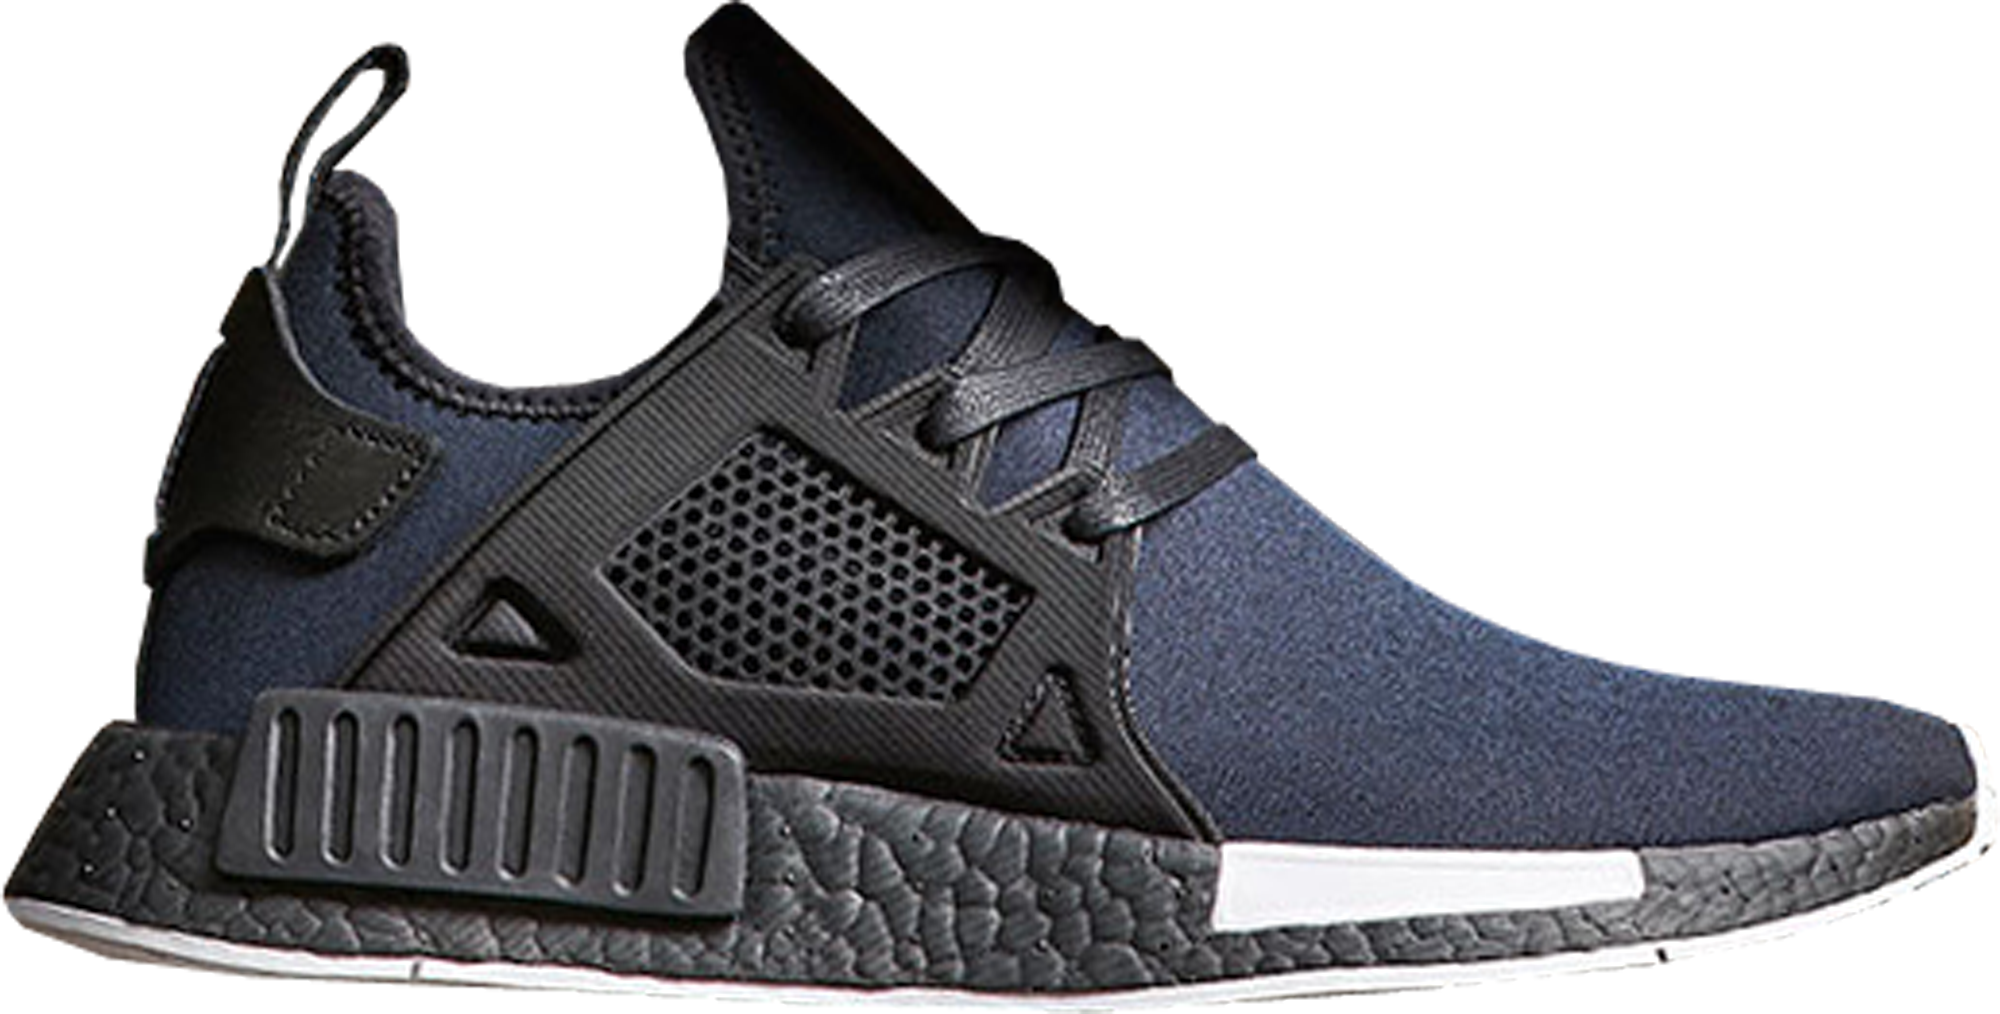 adidas nmd xr1 size henry poole